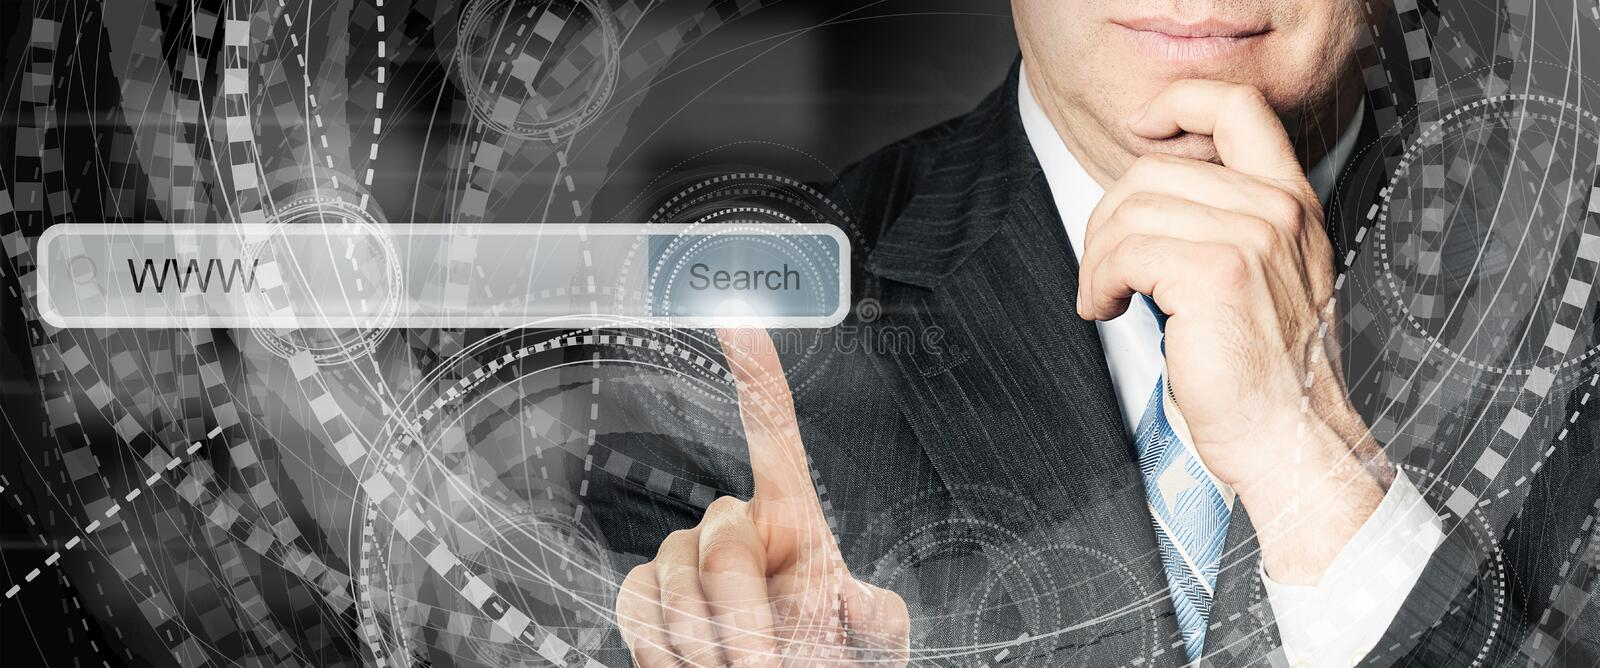 Business man pointing to empty address bar in virtual web browser. Seo, internet marketing and advertising marketing concept.  stock photography